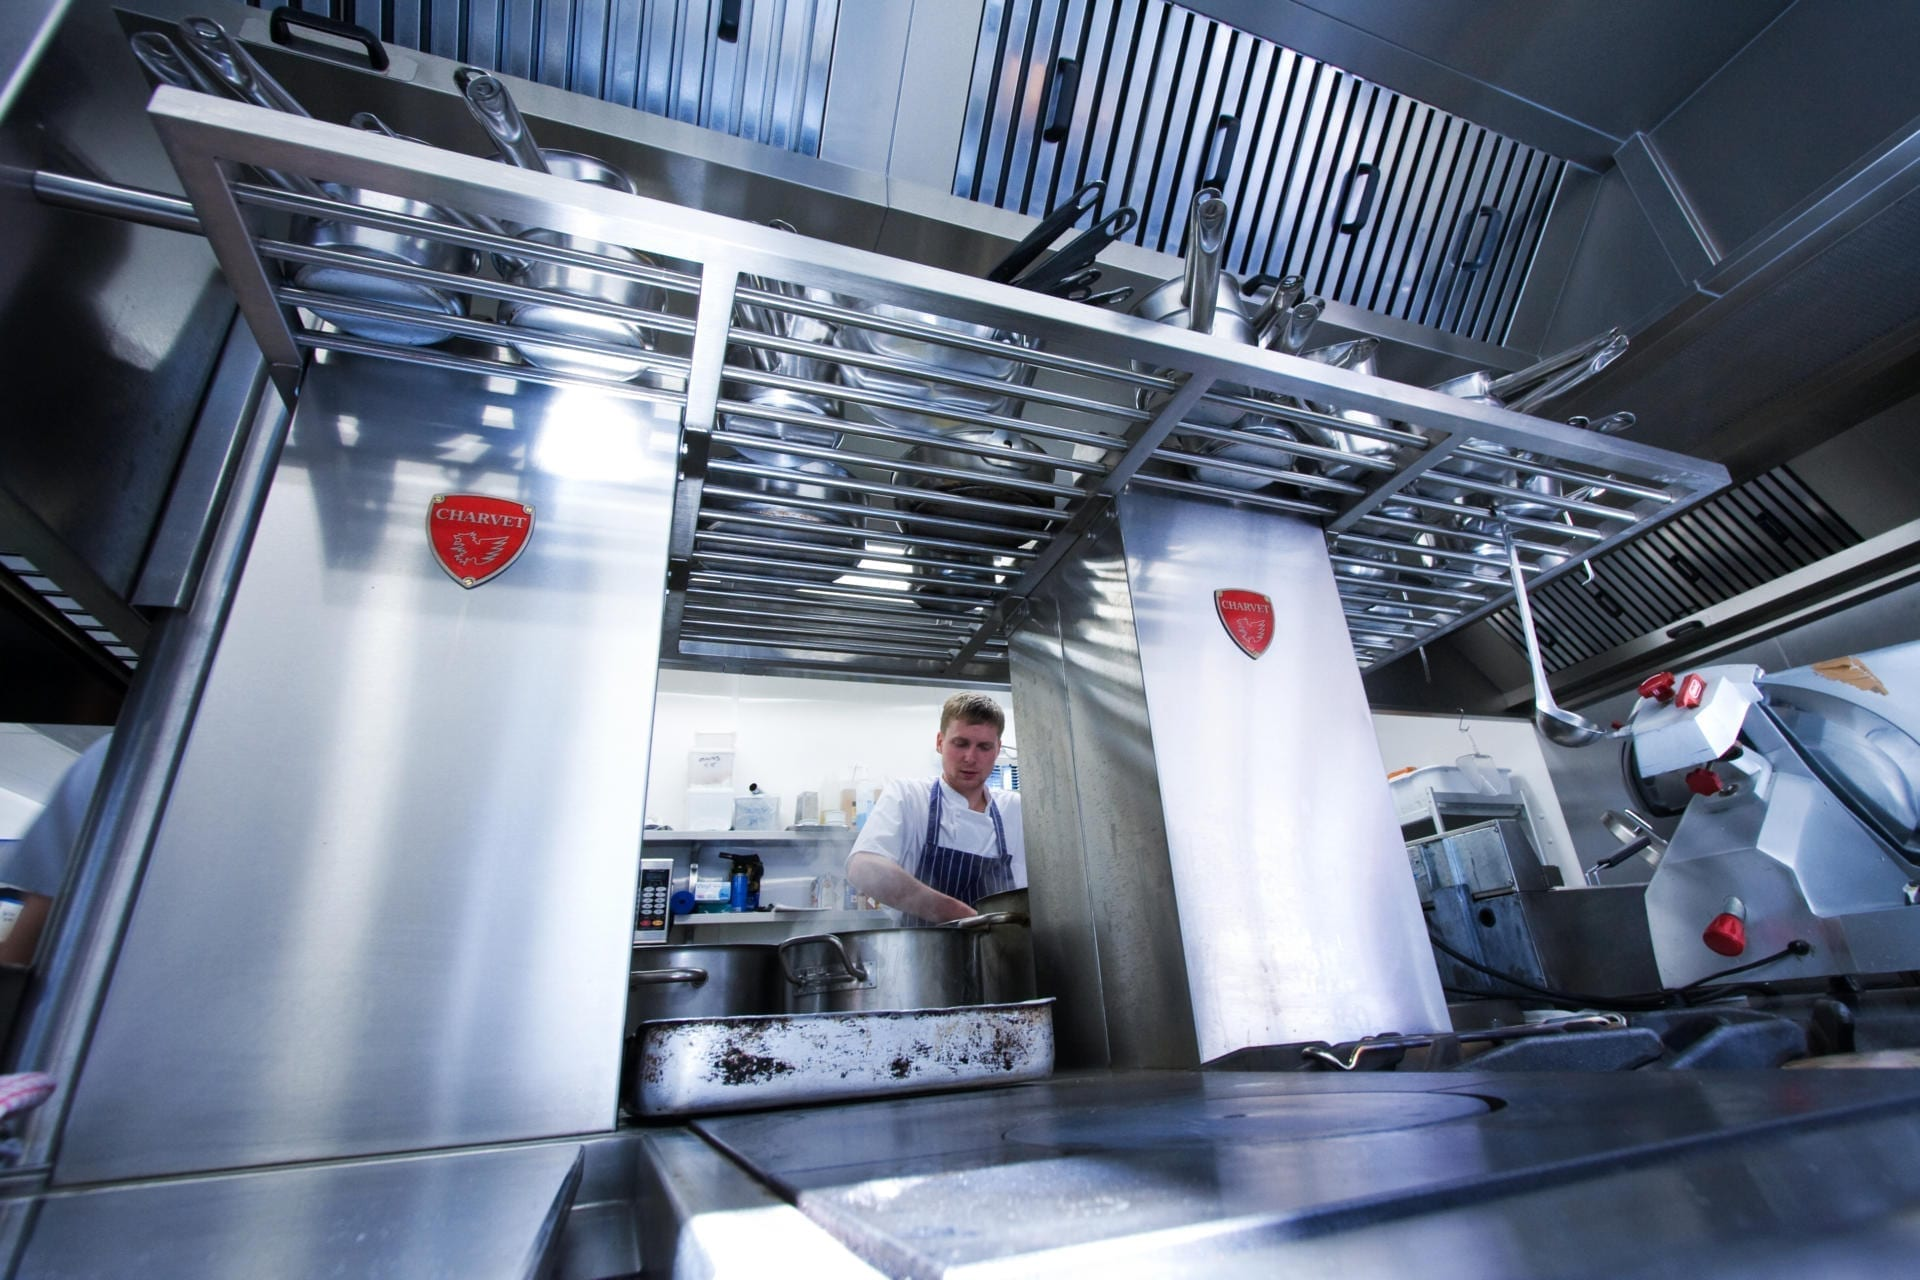 Ockenden-Manor-Hotel-Sussex-Restaurant-Kitchen-Fabrication-Stainless-Steel-Commercial-spacecatering_5